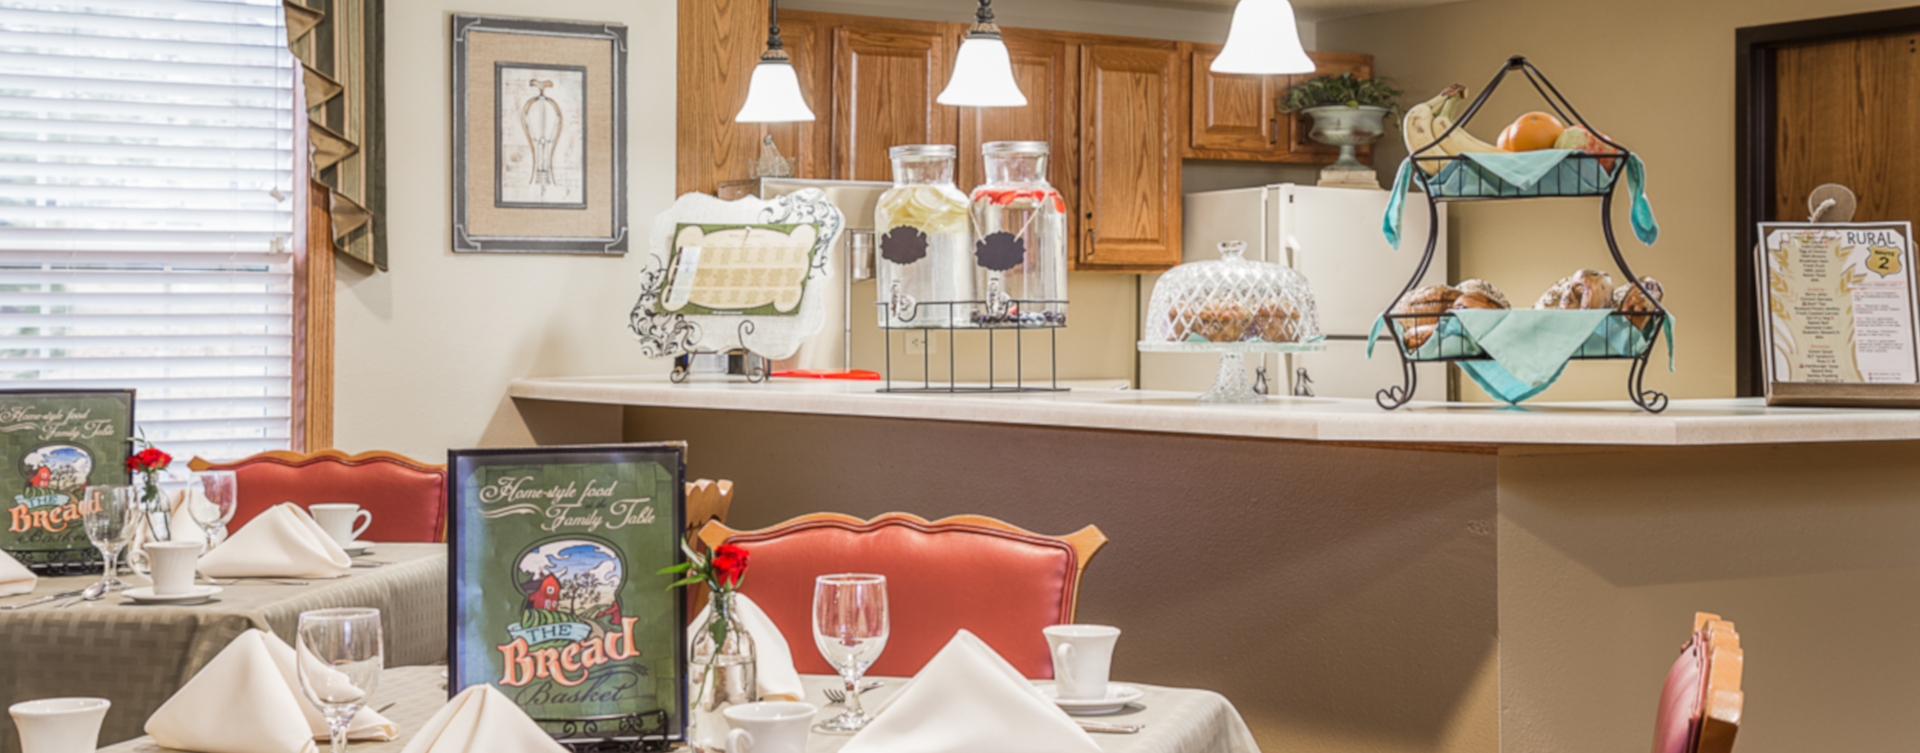 Mingle and converse with old and new friends alike in the bistro at Bickford of Urbandale